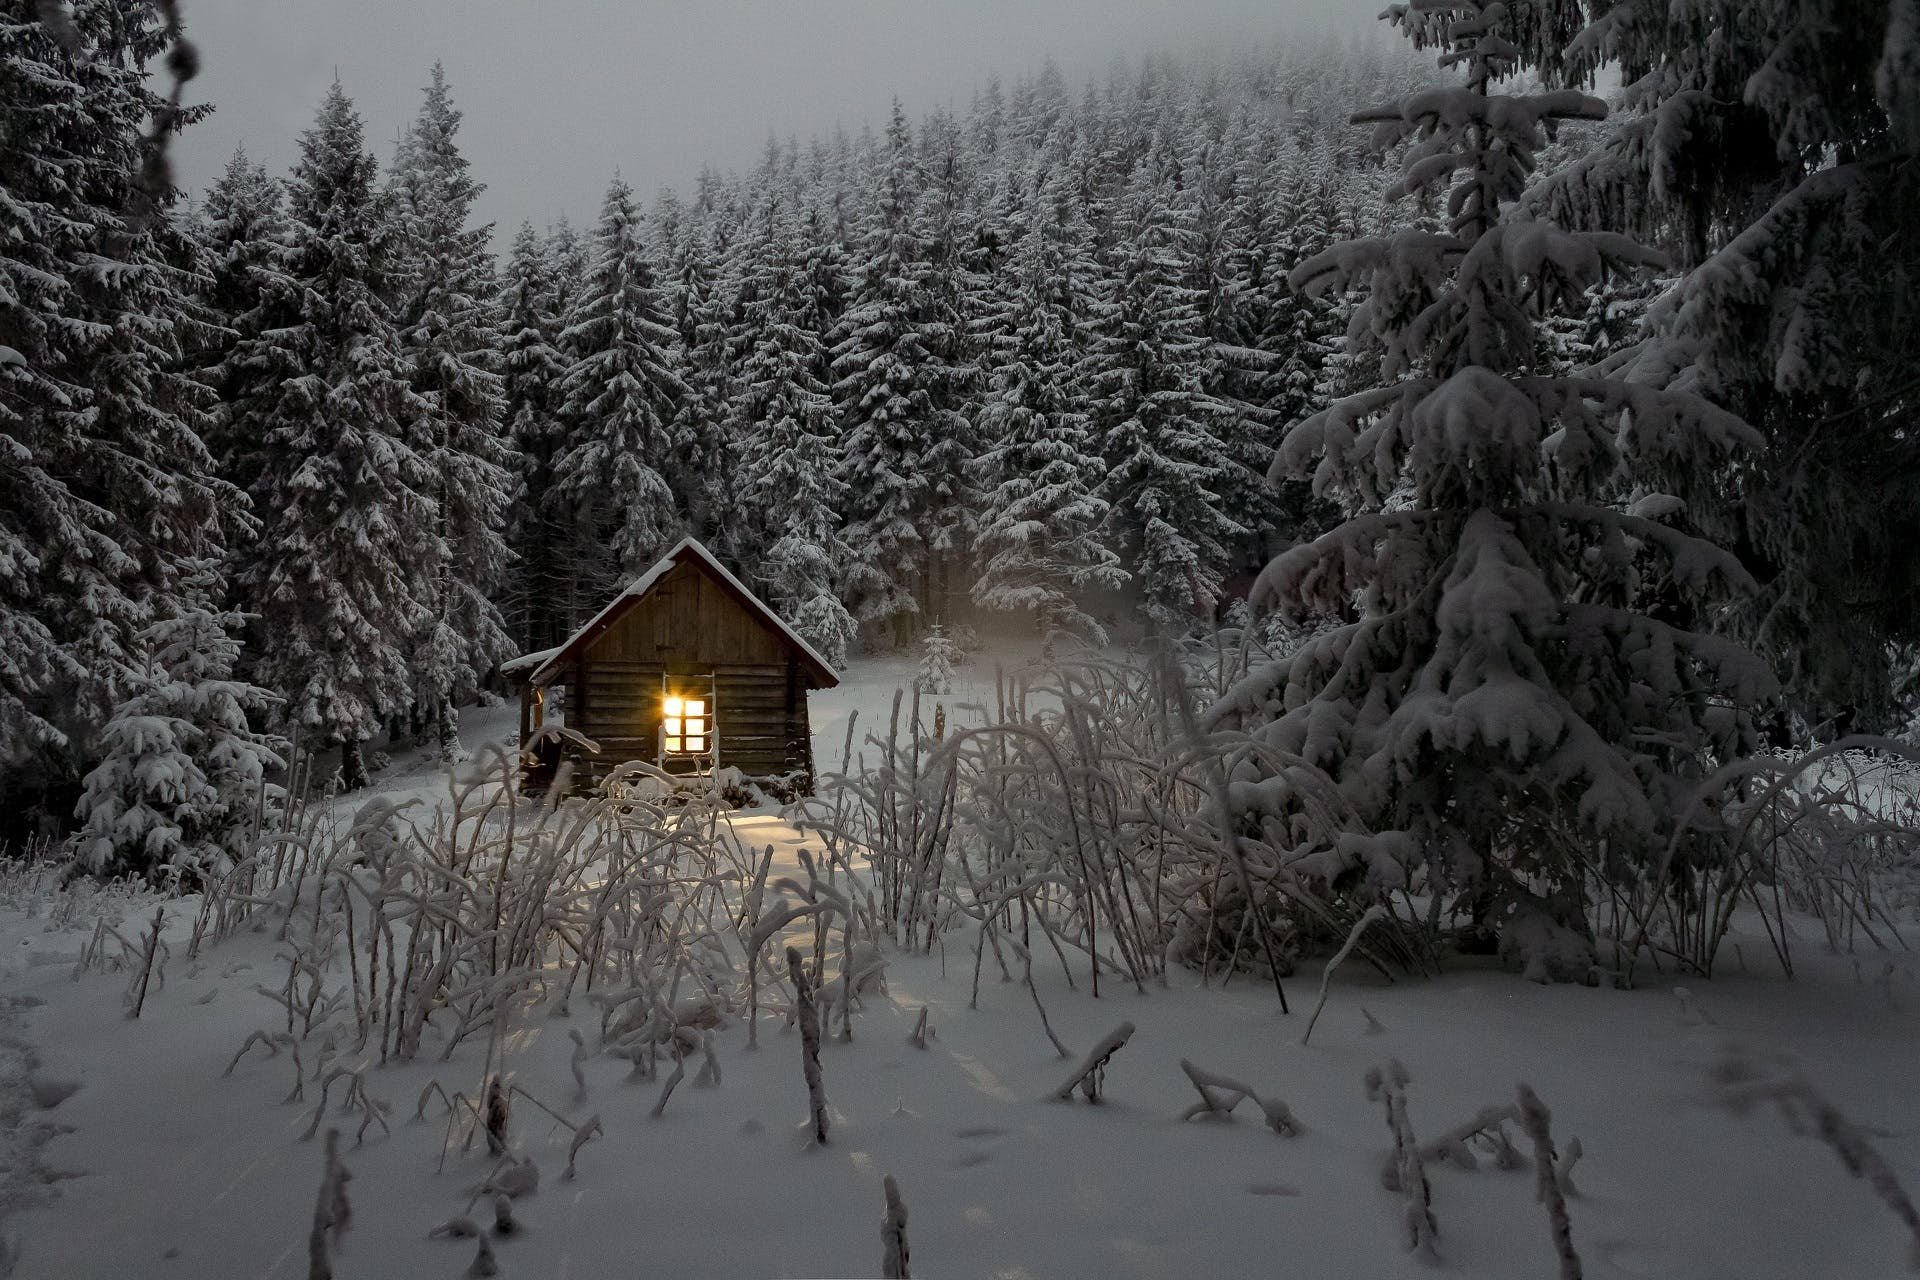 Free stock photo of snow, nature, winter, house